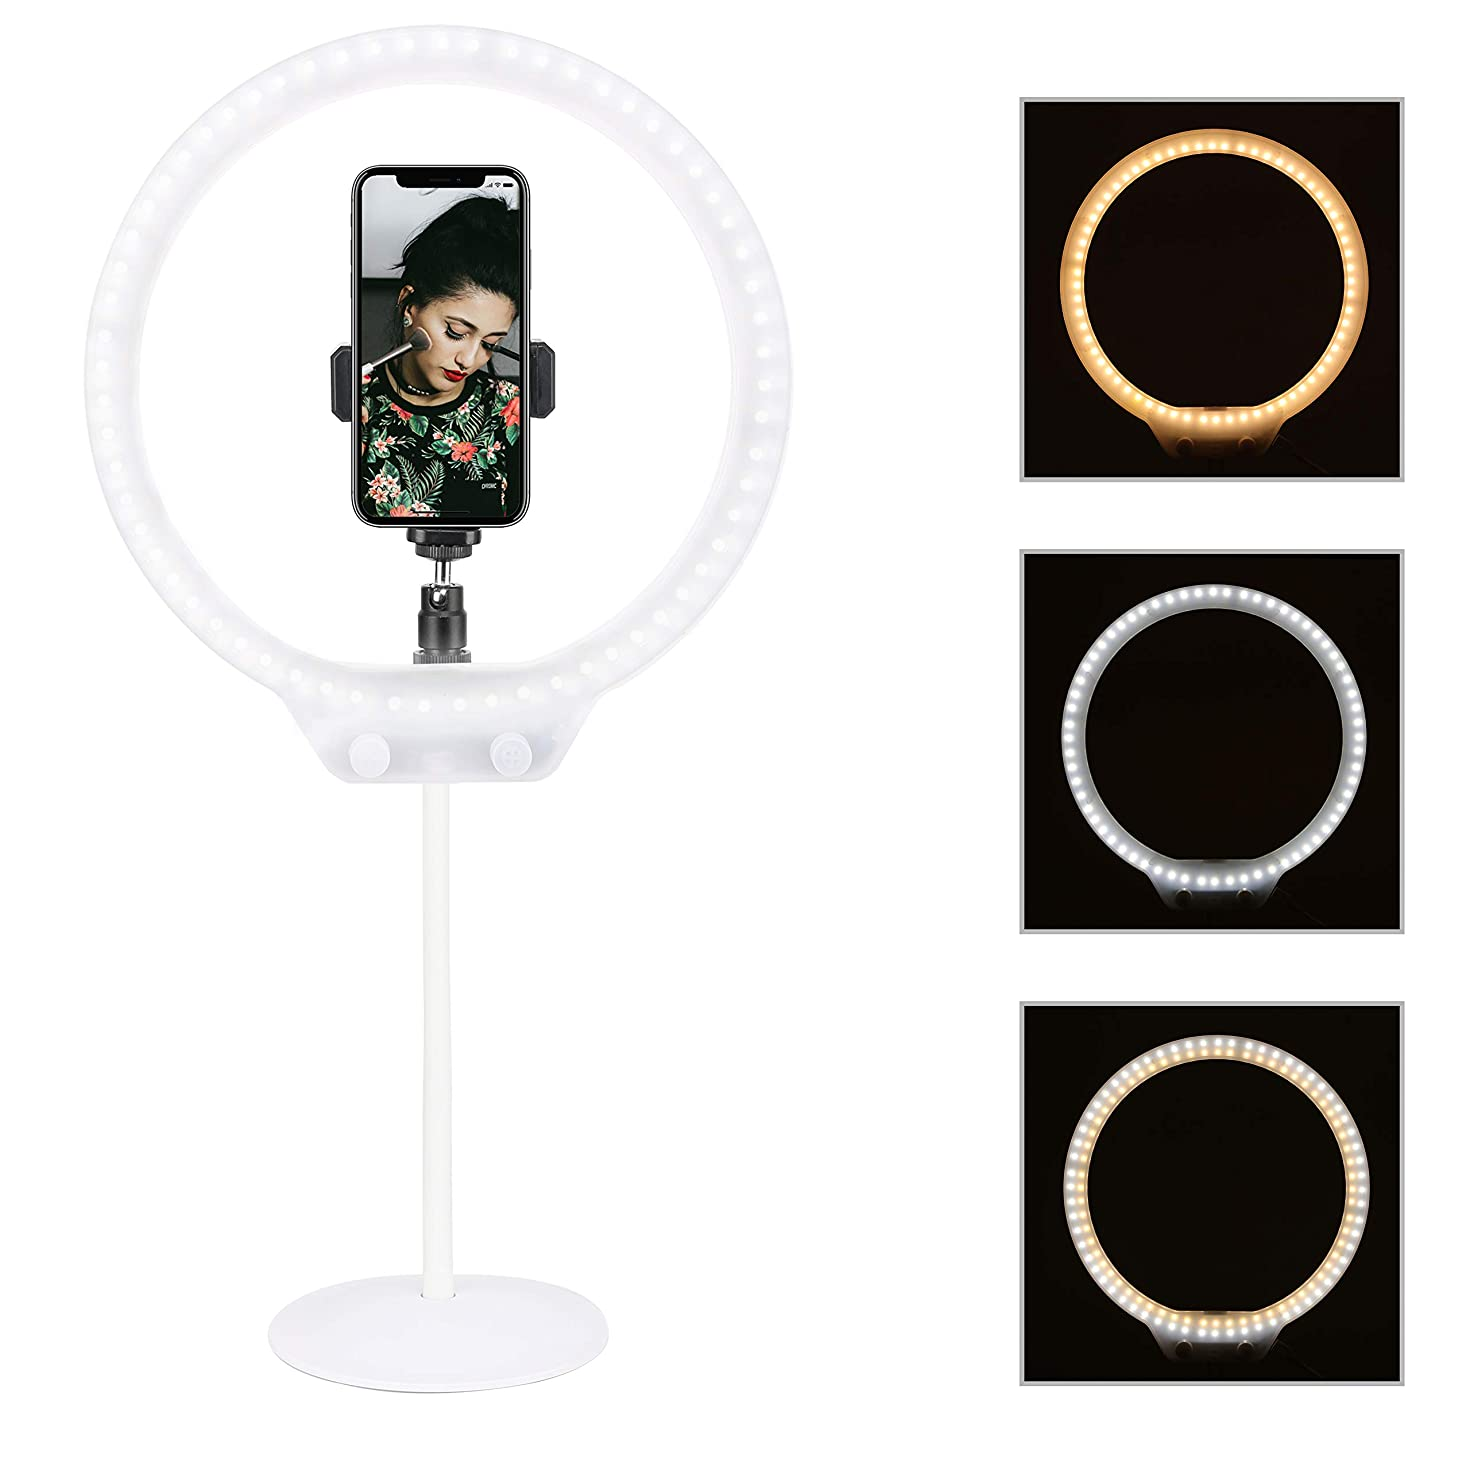 Zomei 10'' LED Selfie Ring Light Dimmable 7.5W 3200-5500K  USB Desktop Circle Light  for YouTube Video, Portrait Photography,  Makeup,Compatible with iPhone 8 7 6 Plus X Android(White)